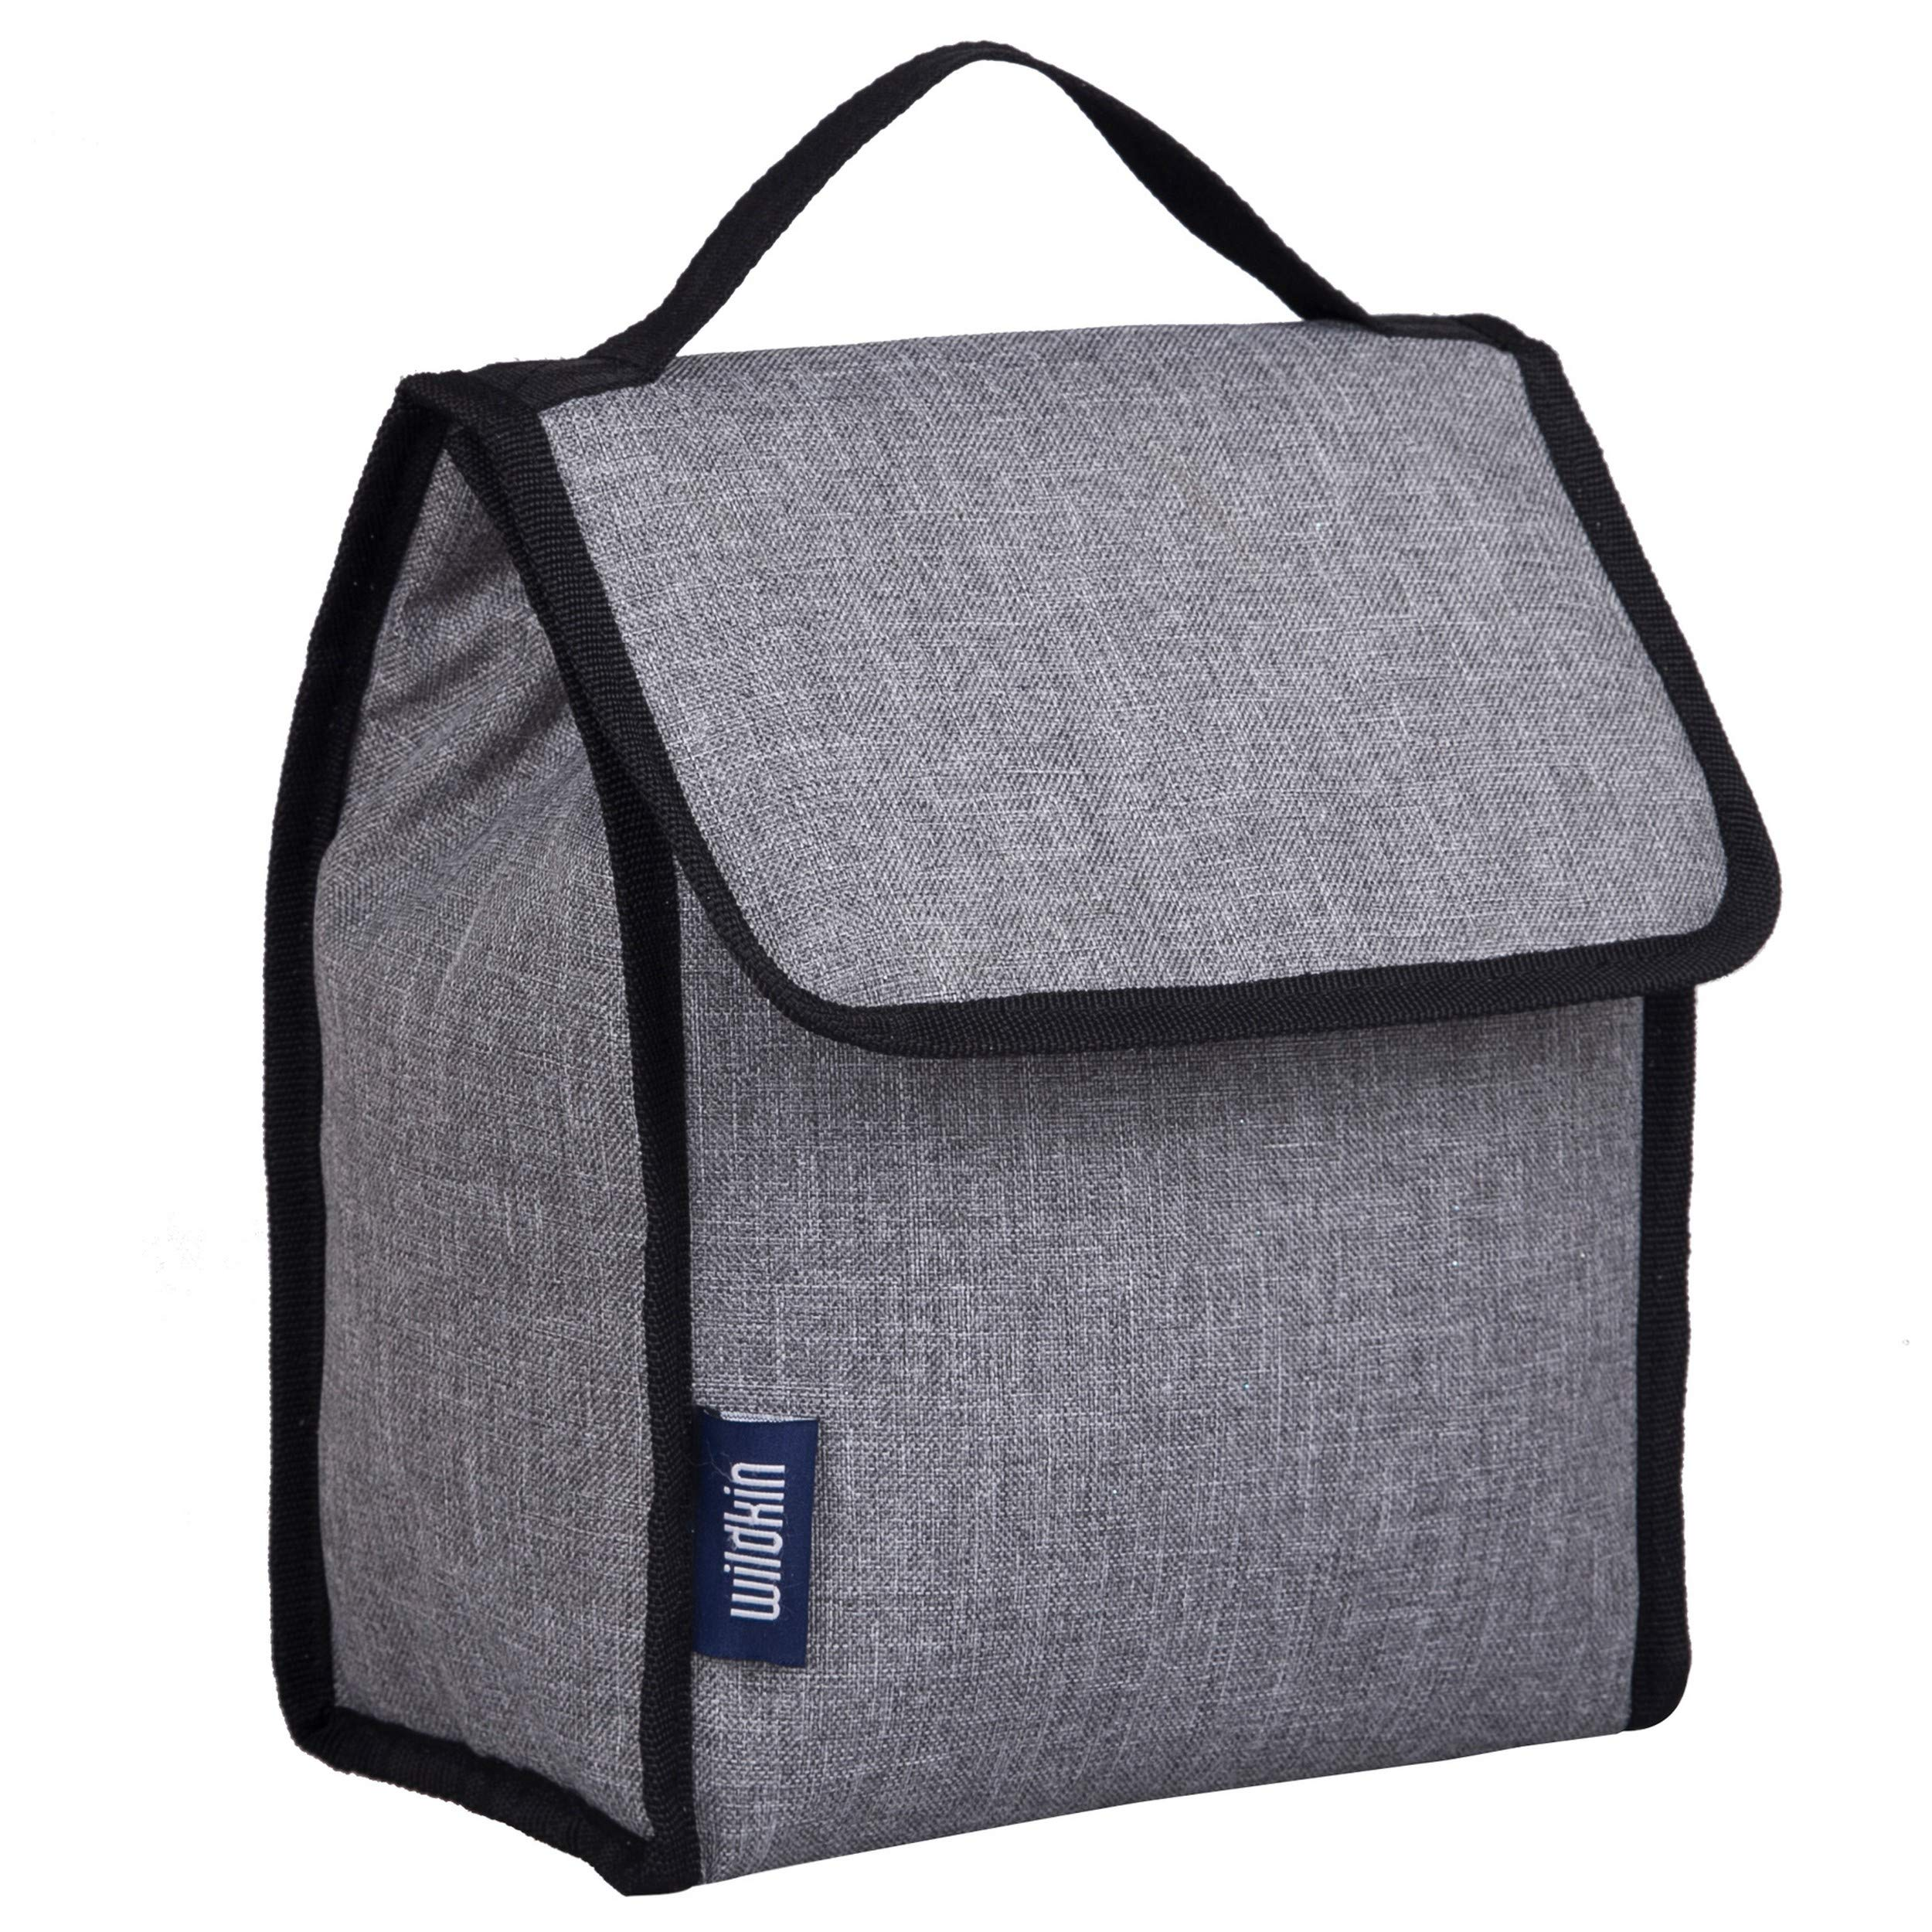 Wildkin Large Insulated Lunch Bag for Men and Women, Perfect Size for Packing Hot or Cold Snacks for Work and Travel, Measures 10 x 8.5 x 5 Inches, Mom's Choice Award Winner, BPA-free (Grey Tweed)